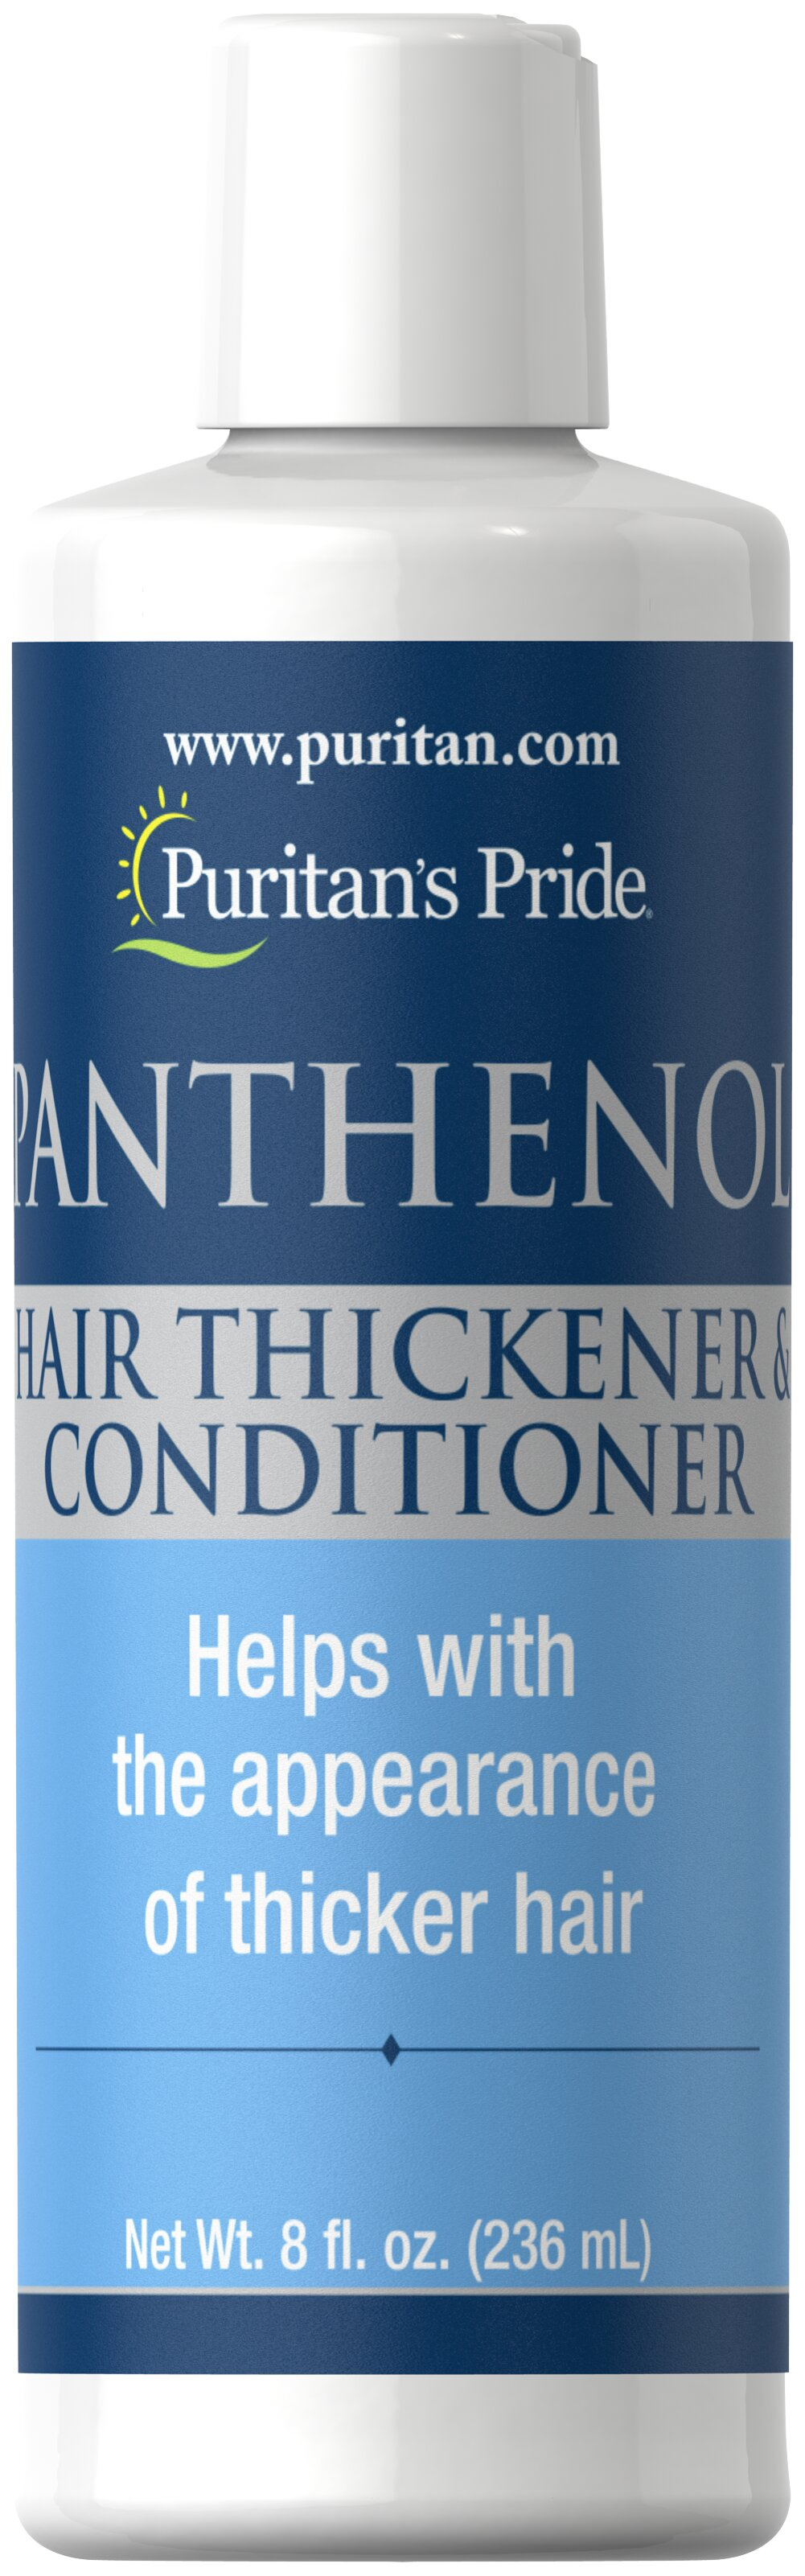 Panthenol Hair Thickener & Conditioner <p>Add New Body to Lifeless Hair</p><p>Pamper your hair with Puritan's Pride Hair Thickener & Conditioner. After continuous use, your hair will have more body, feel stronger, and look healthier. Panthenol revitalizes your hair as it penetrates each hair shaft, and can make a dramatic difference in the look and feel of your hair.</p> 8 fl oz Conditioner  $9.99